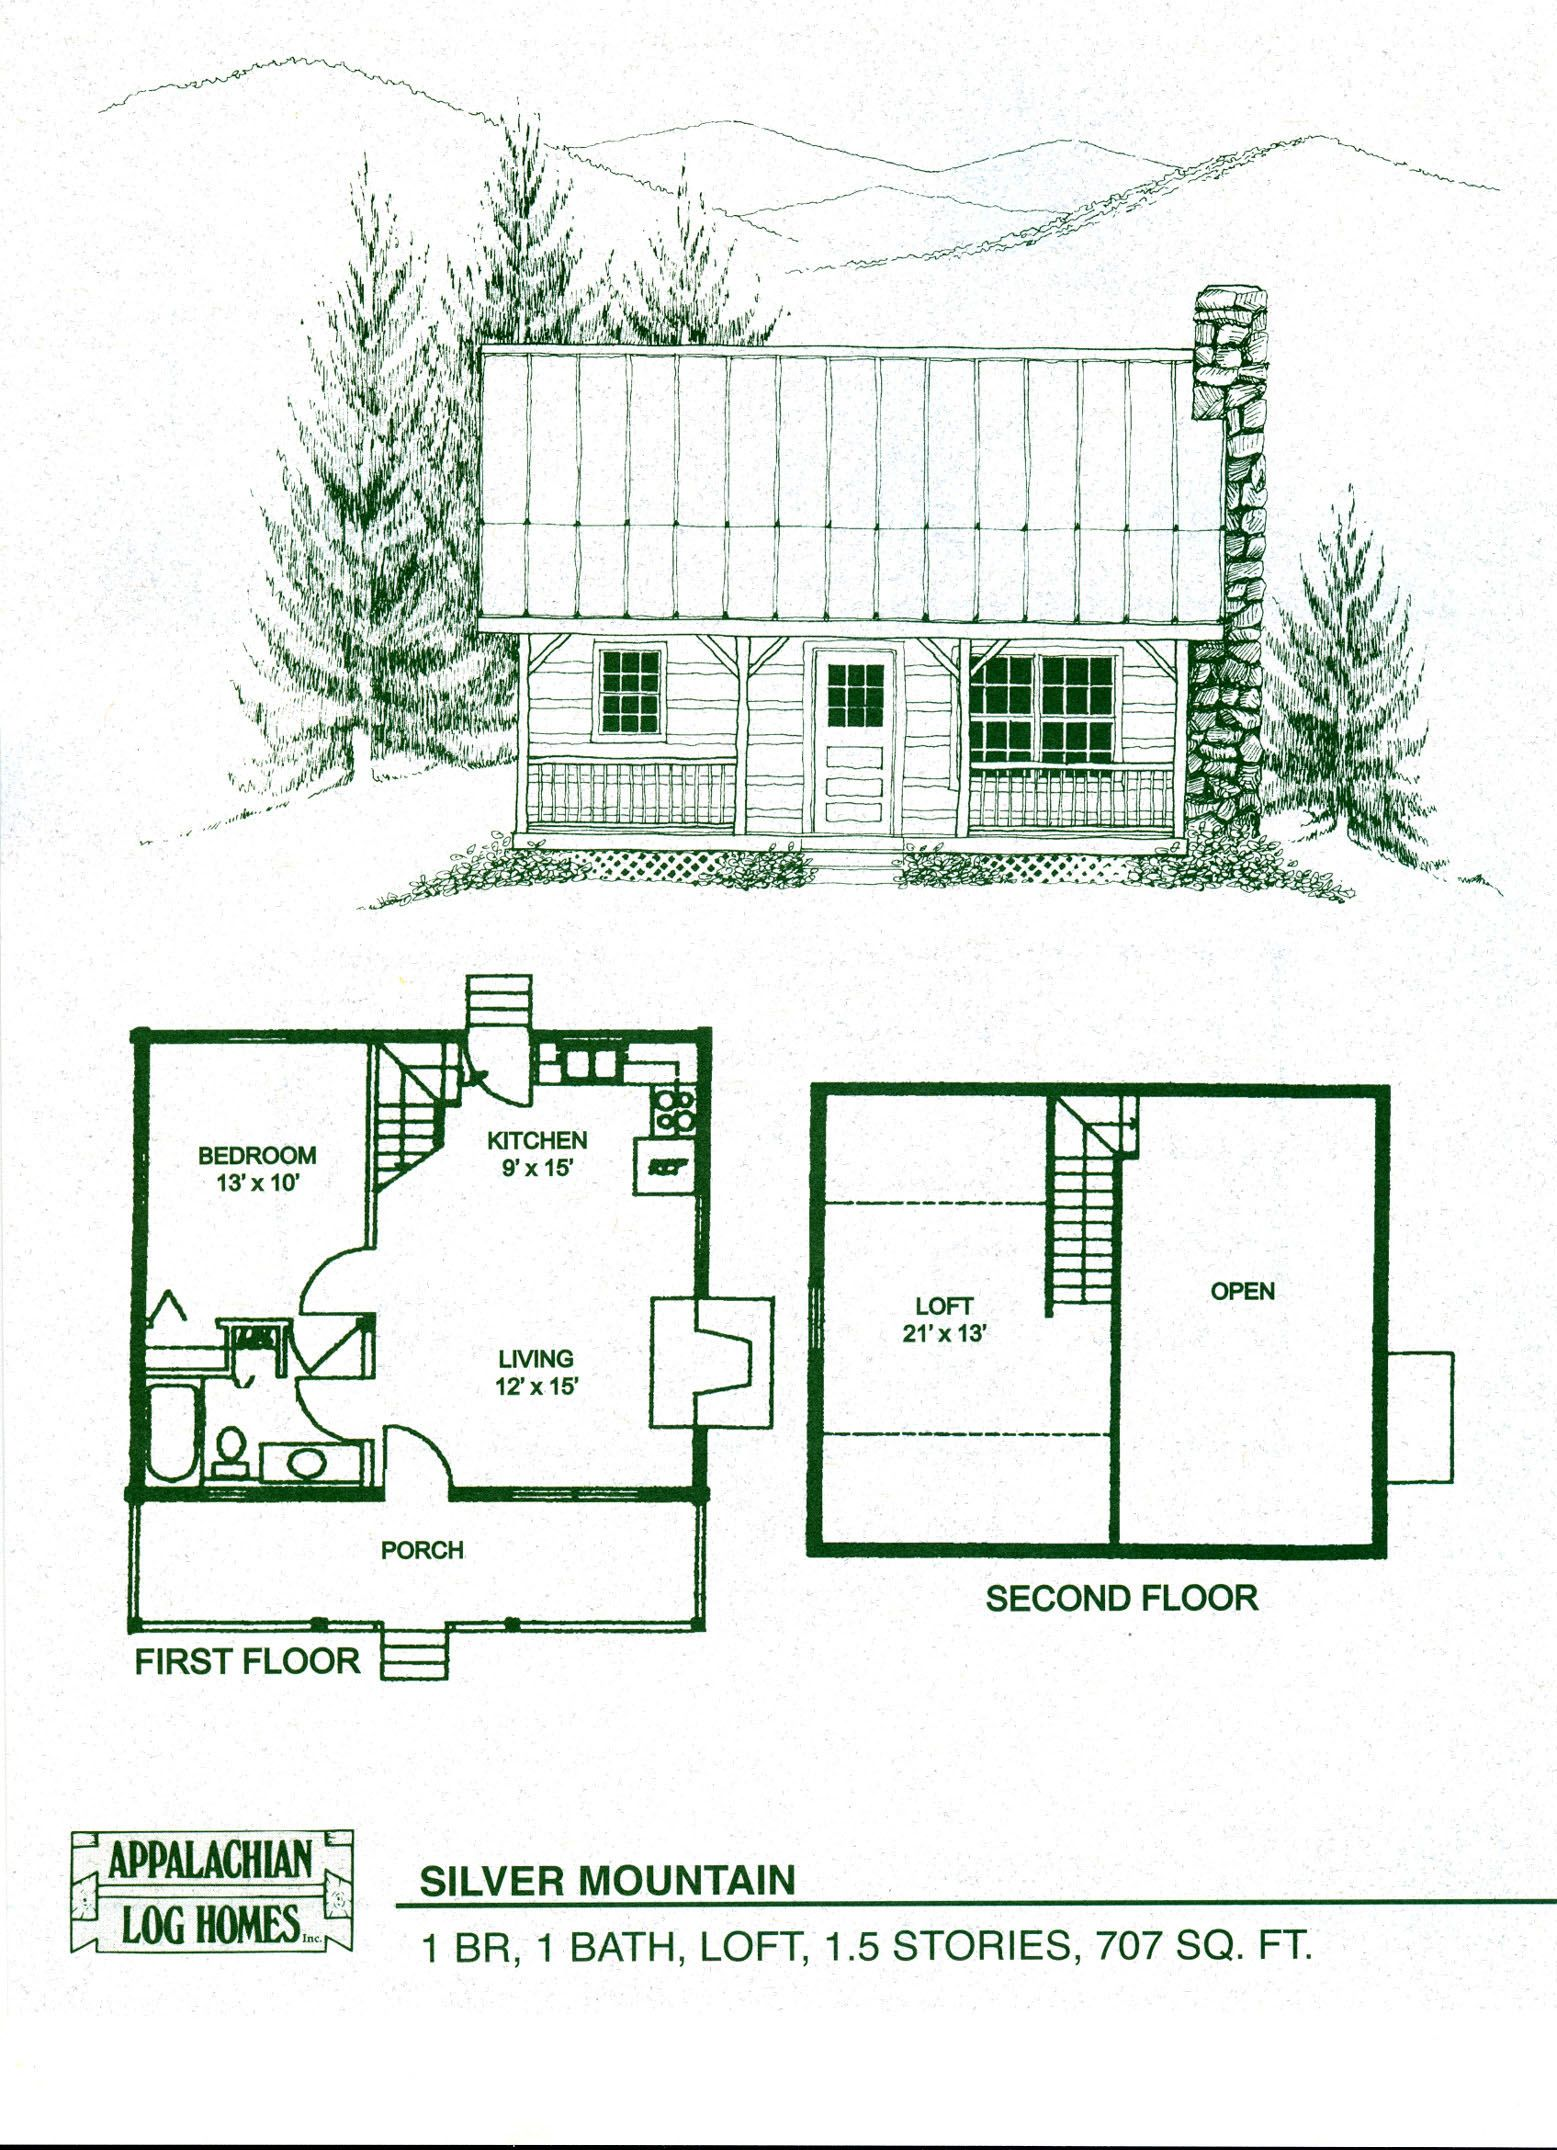 Cabin Floor Plans log home floor plans Log Cabin Floor Plans